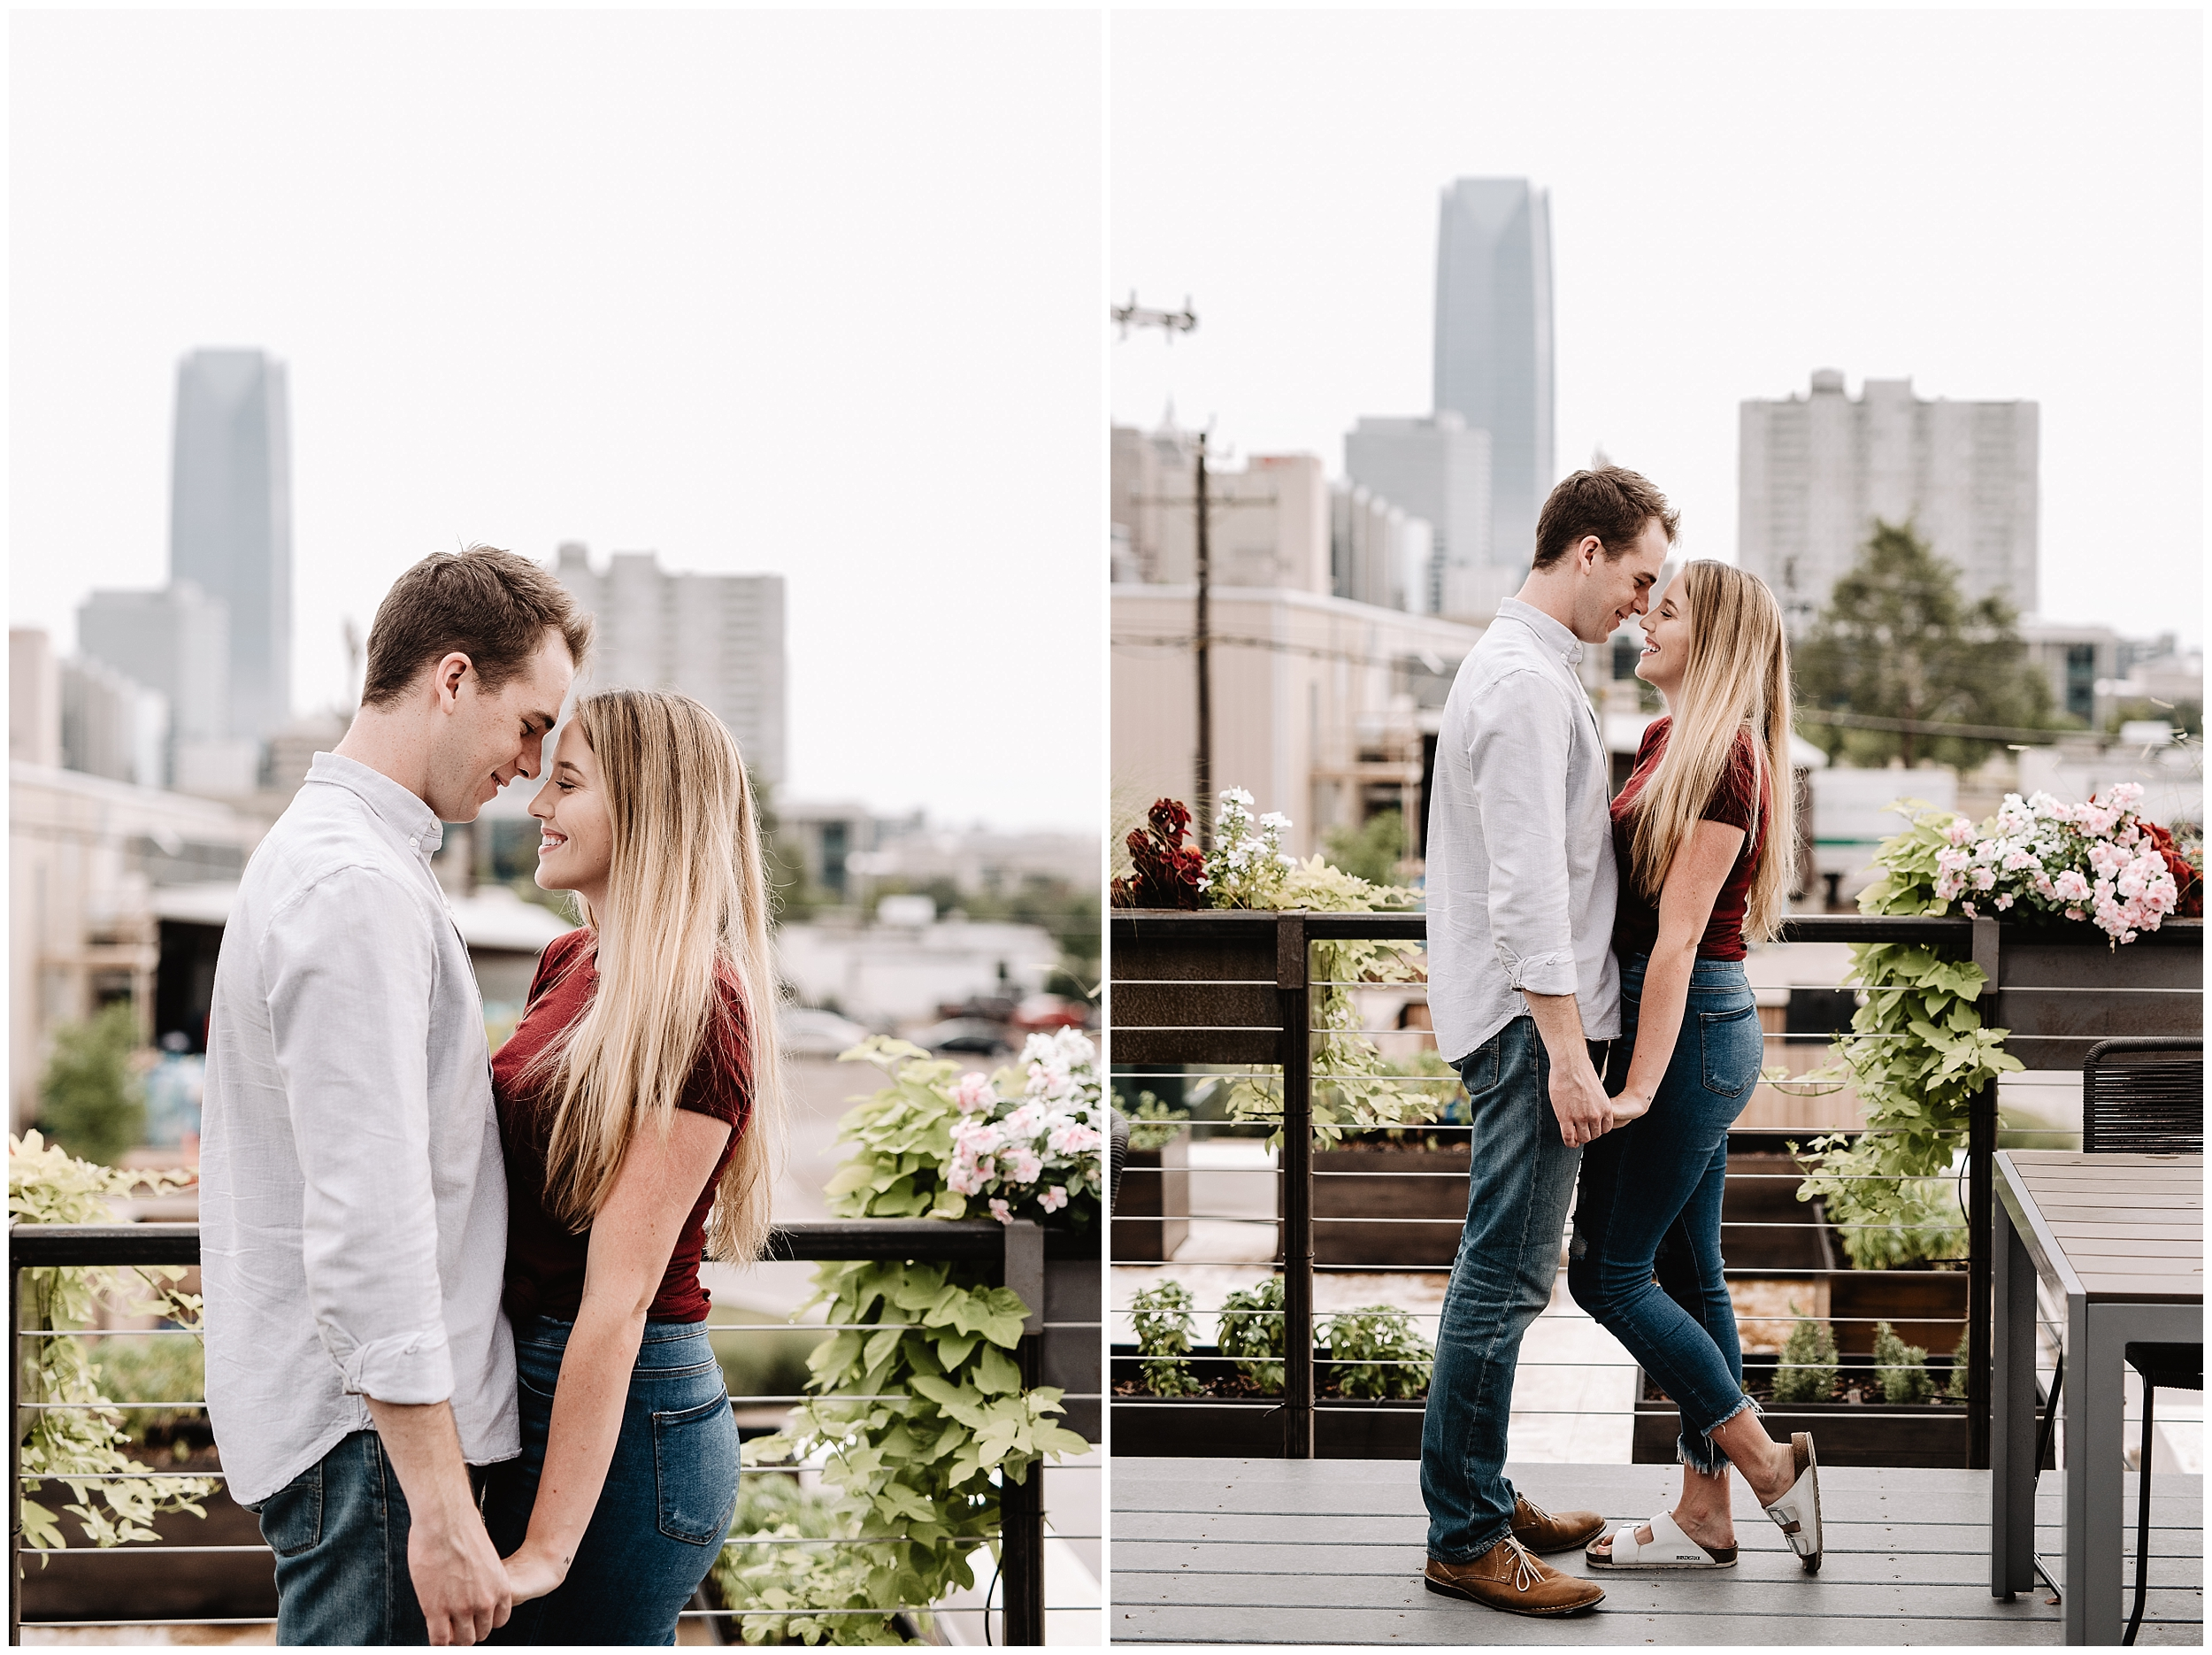 oklahoma wedding photographer date night engagement ice cream kaisers halls pizza kitchen fun shoot midtown okc  casual downtown skyline